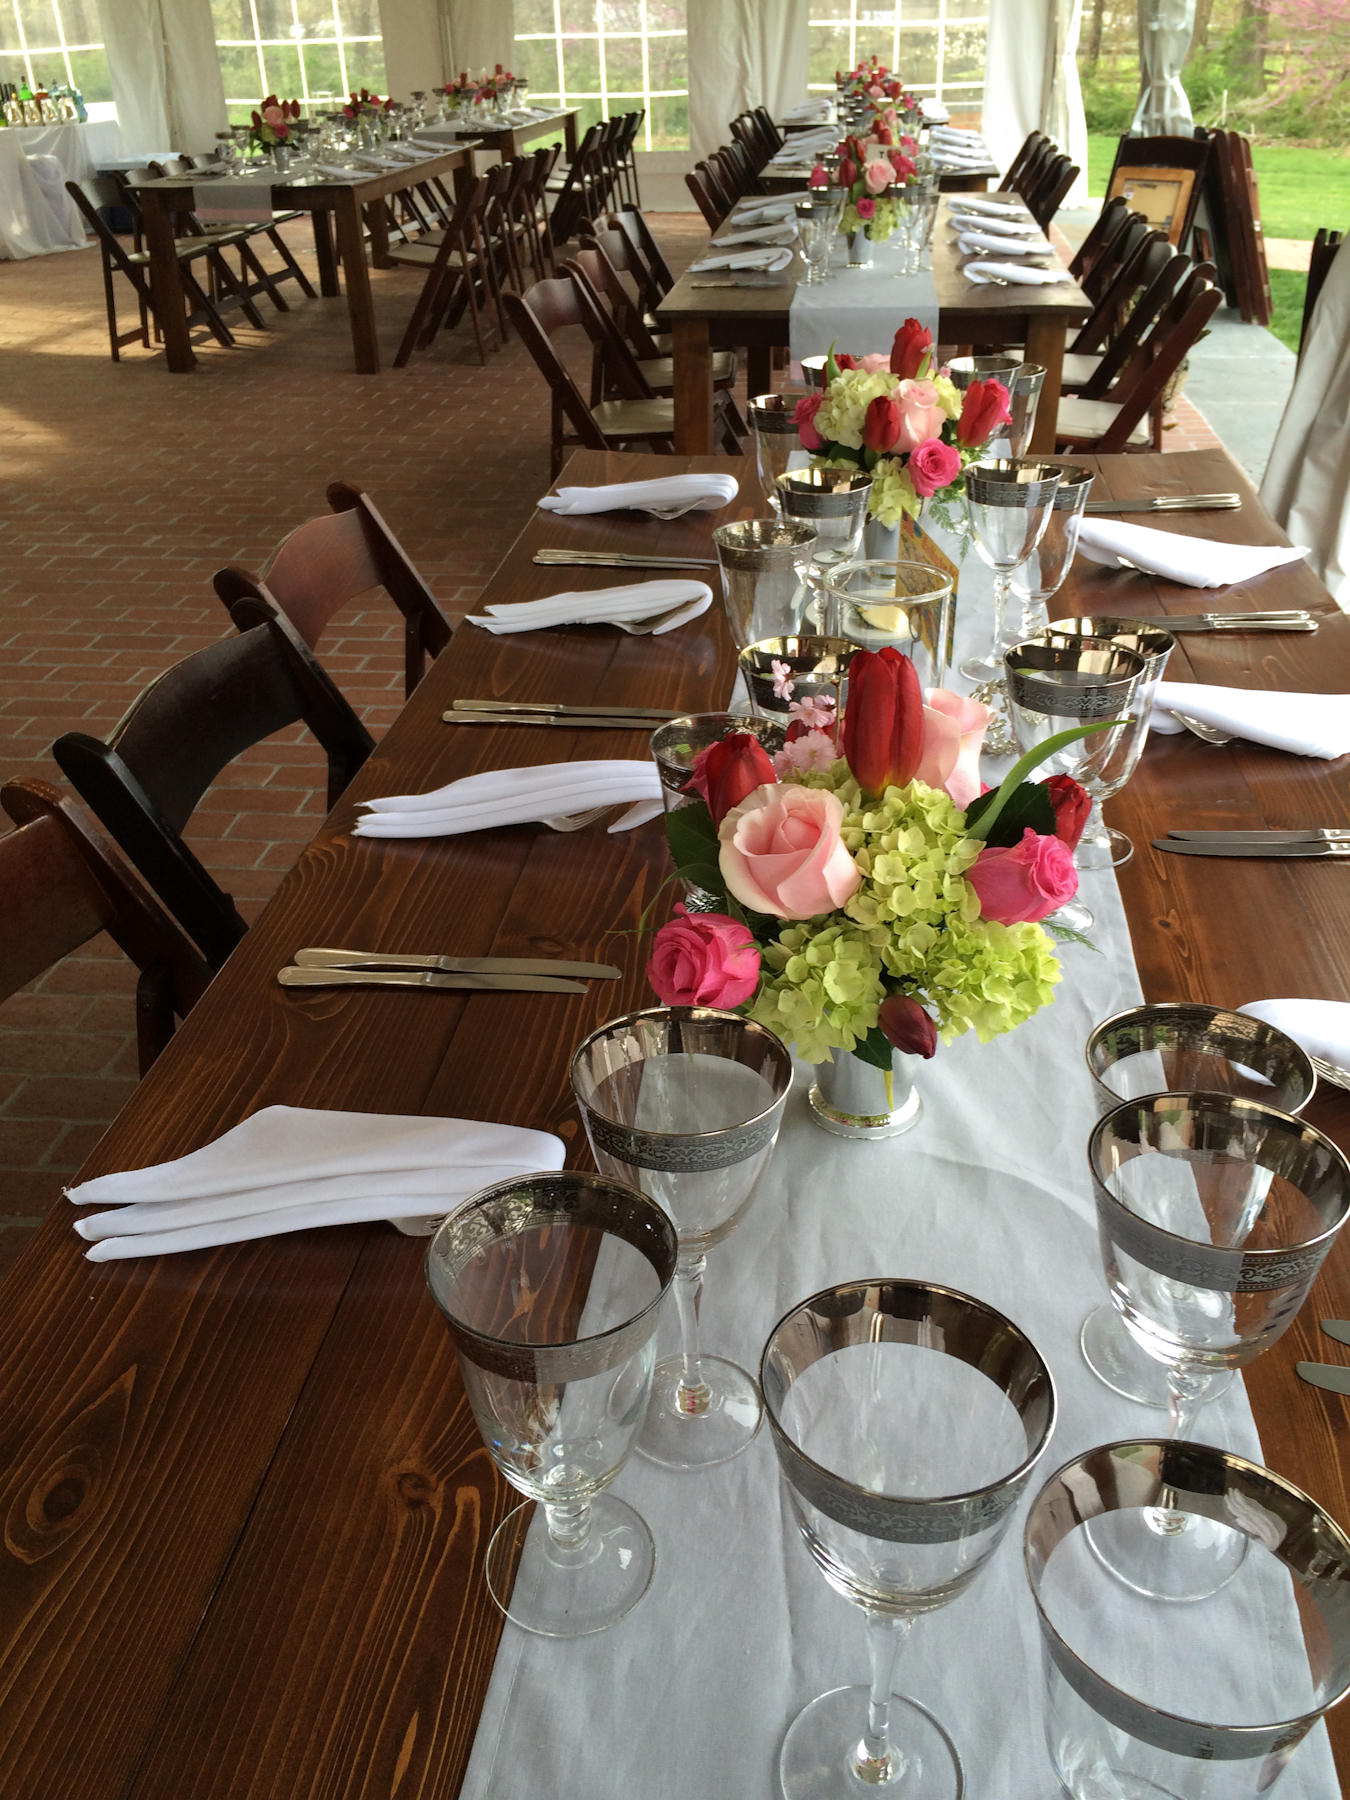 Rustic Wedding Farm Tables - Catering by Seasons